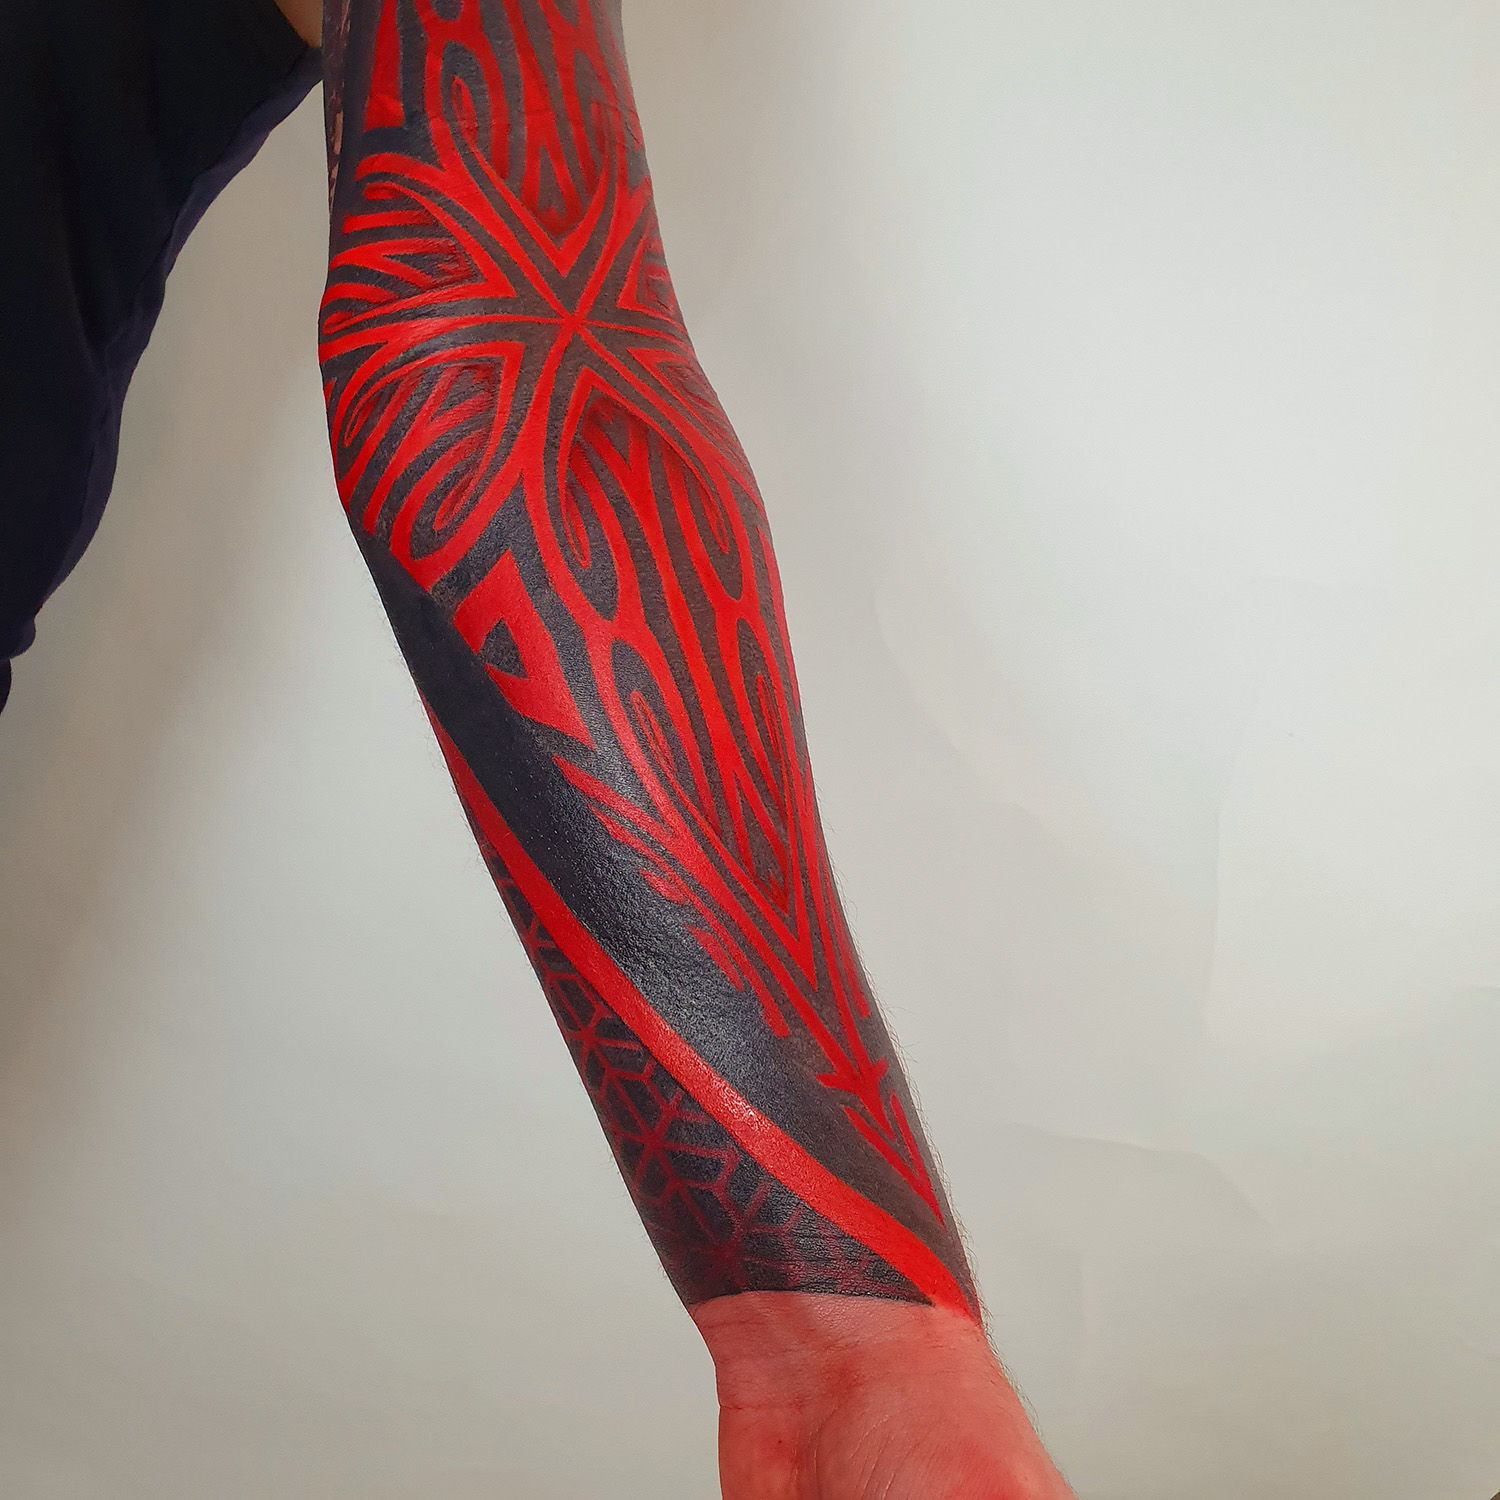 arm sleeve in ornamental, geometric style red and black inks, innovative tattoo